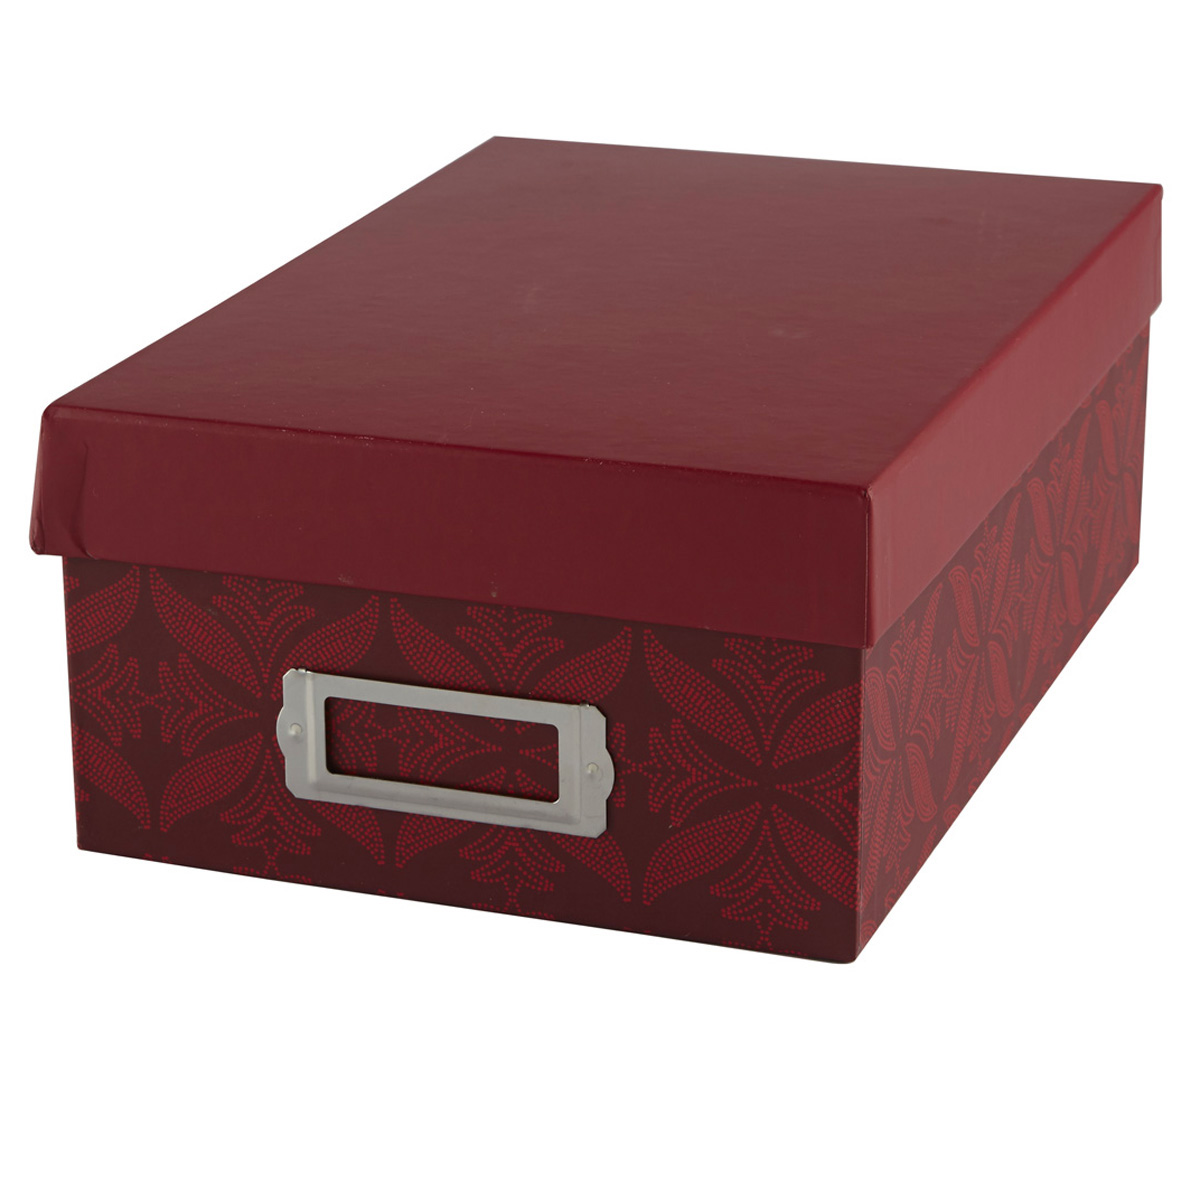 Michaels Favor Boxes With Lids : Buy the decorative photo box by recollections? at michaels